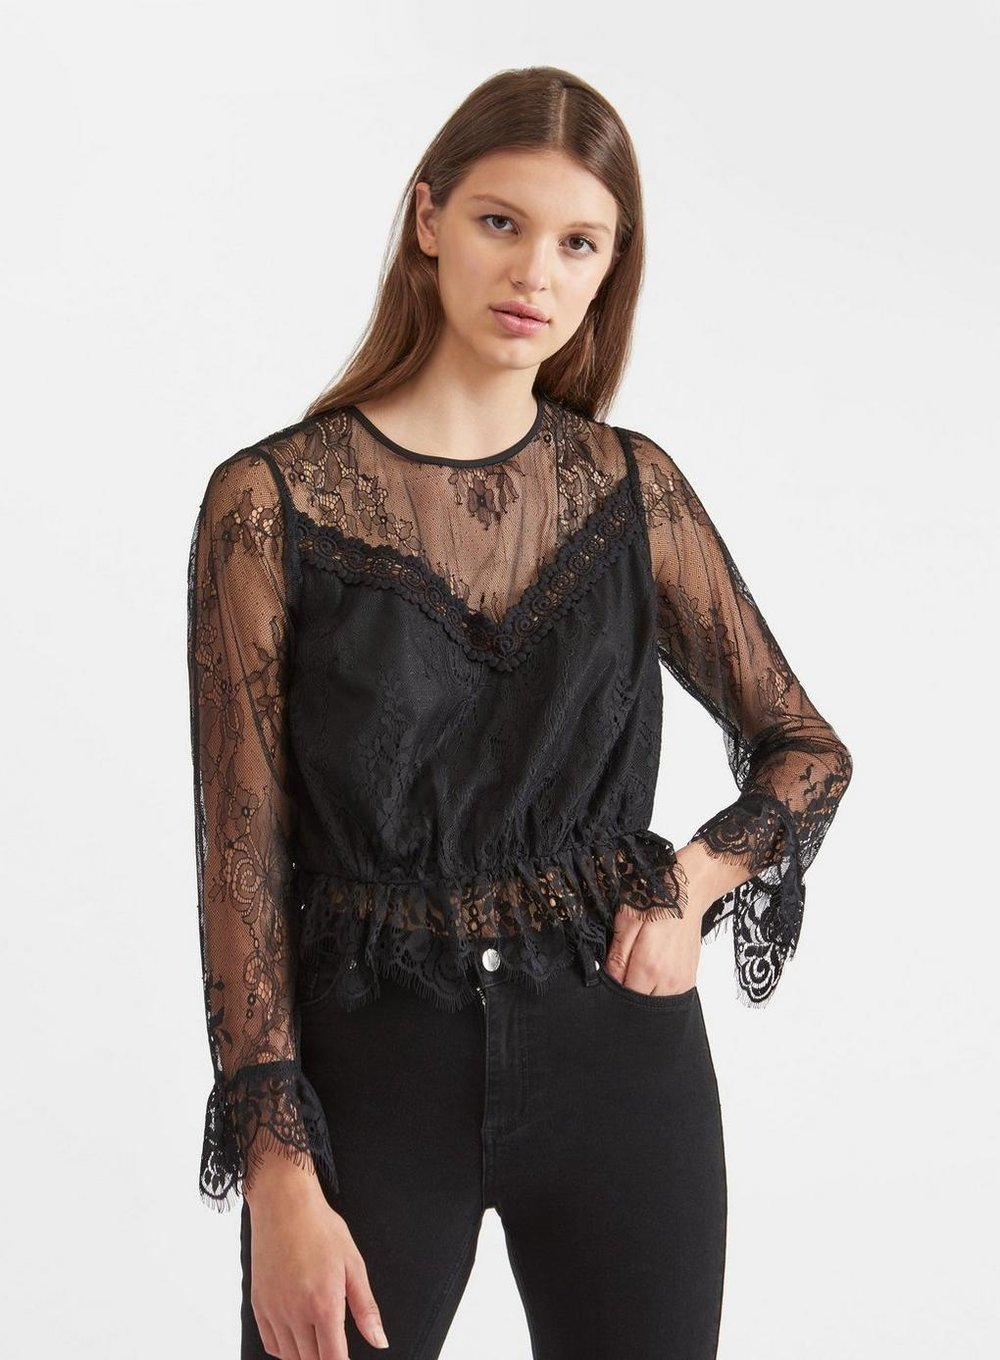 2. THE BLOUSE - The detailing on this slightly sheer blouse gives a touch of the Victorian Gothic whilst still remaining wearable year round.Miss Selfridge £30